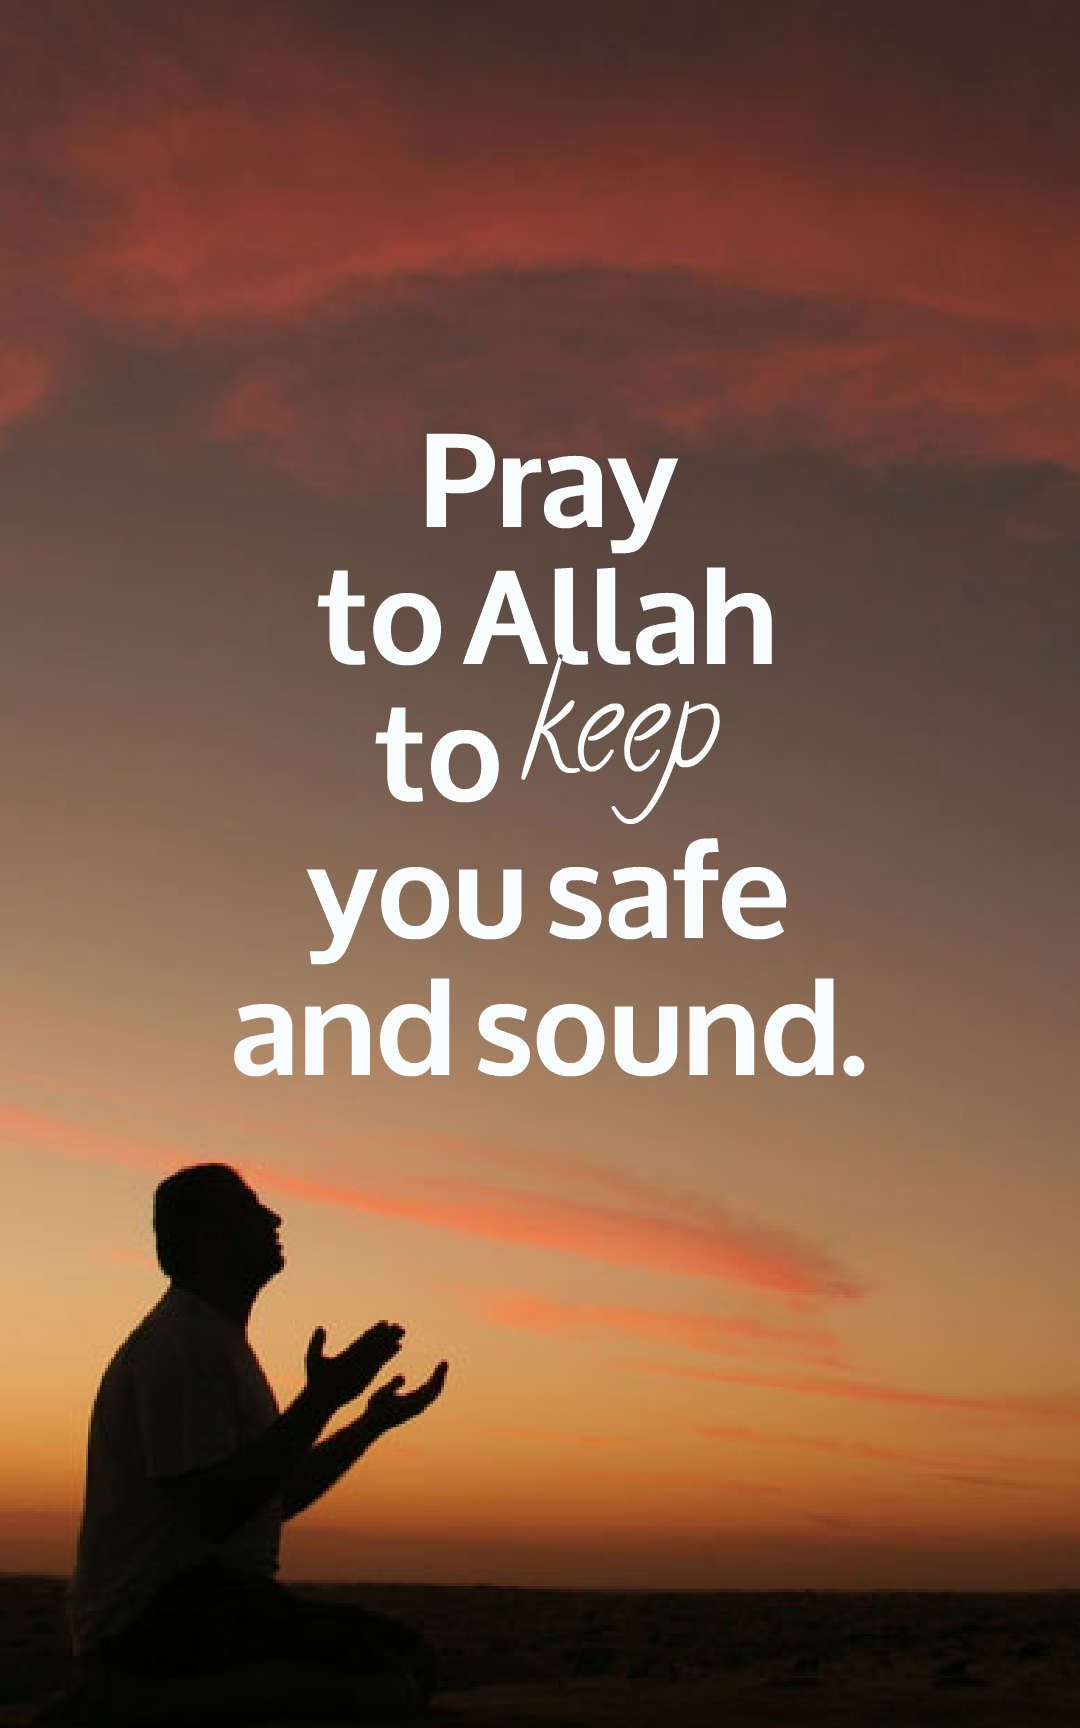 Pray to Allah to keep you safe and sound.